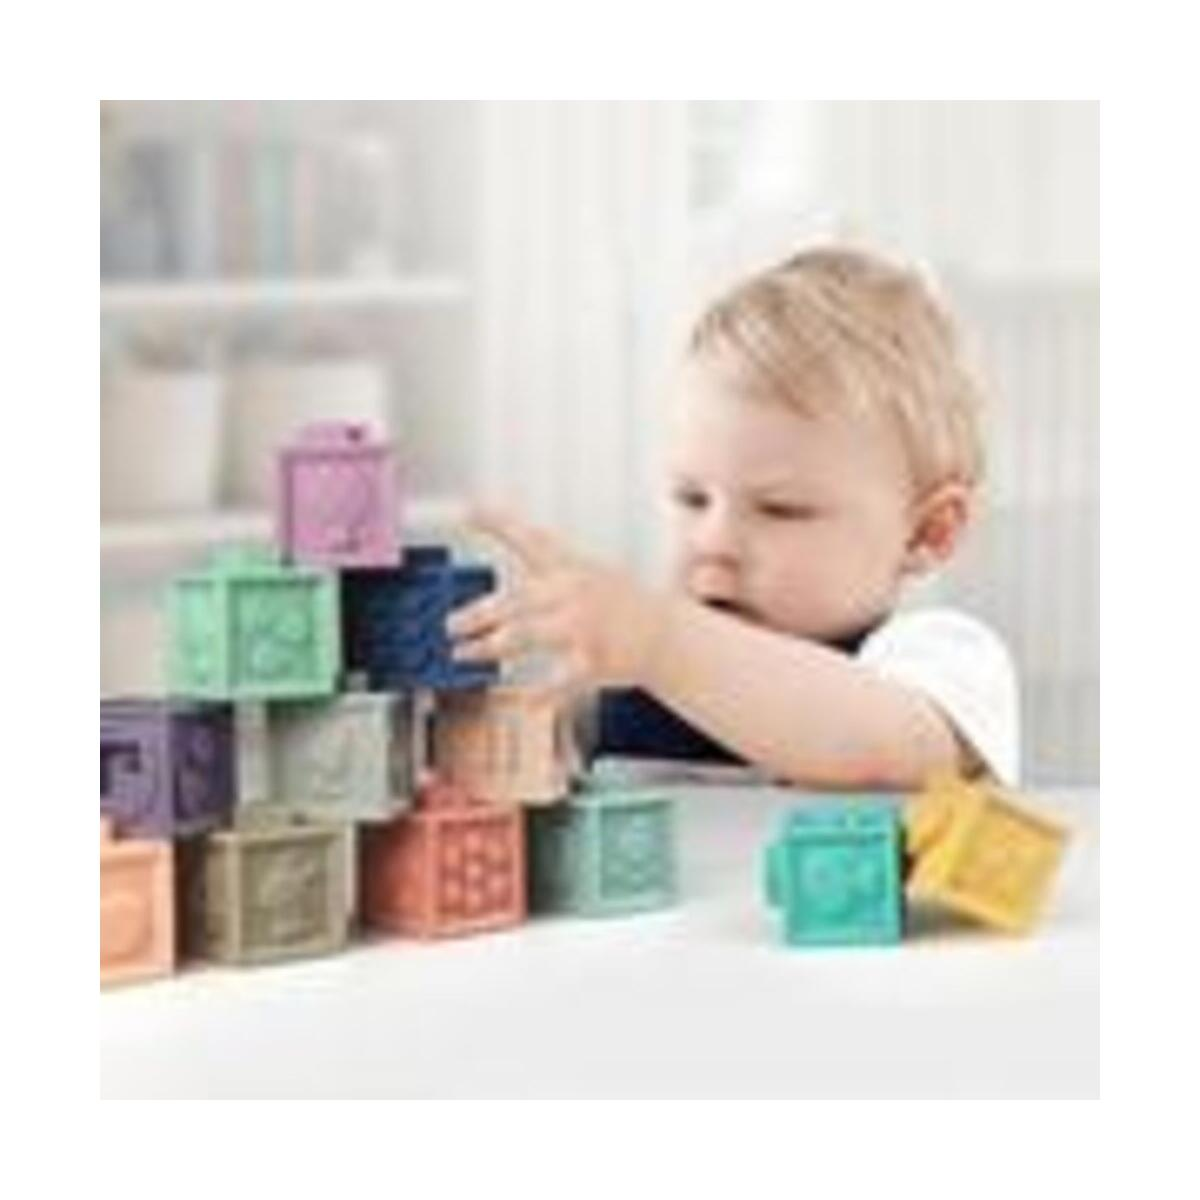 Baby Soft Rubber Vinyl Embossed Building Blocks Baby Teethers Set Grasp Toy 3D Hand Touch Soft Building Blocks